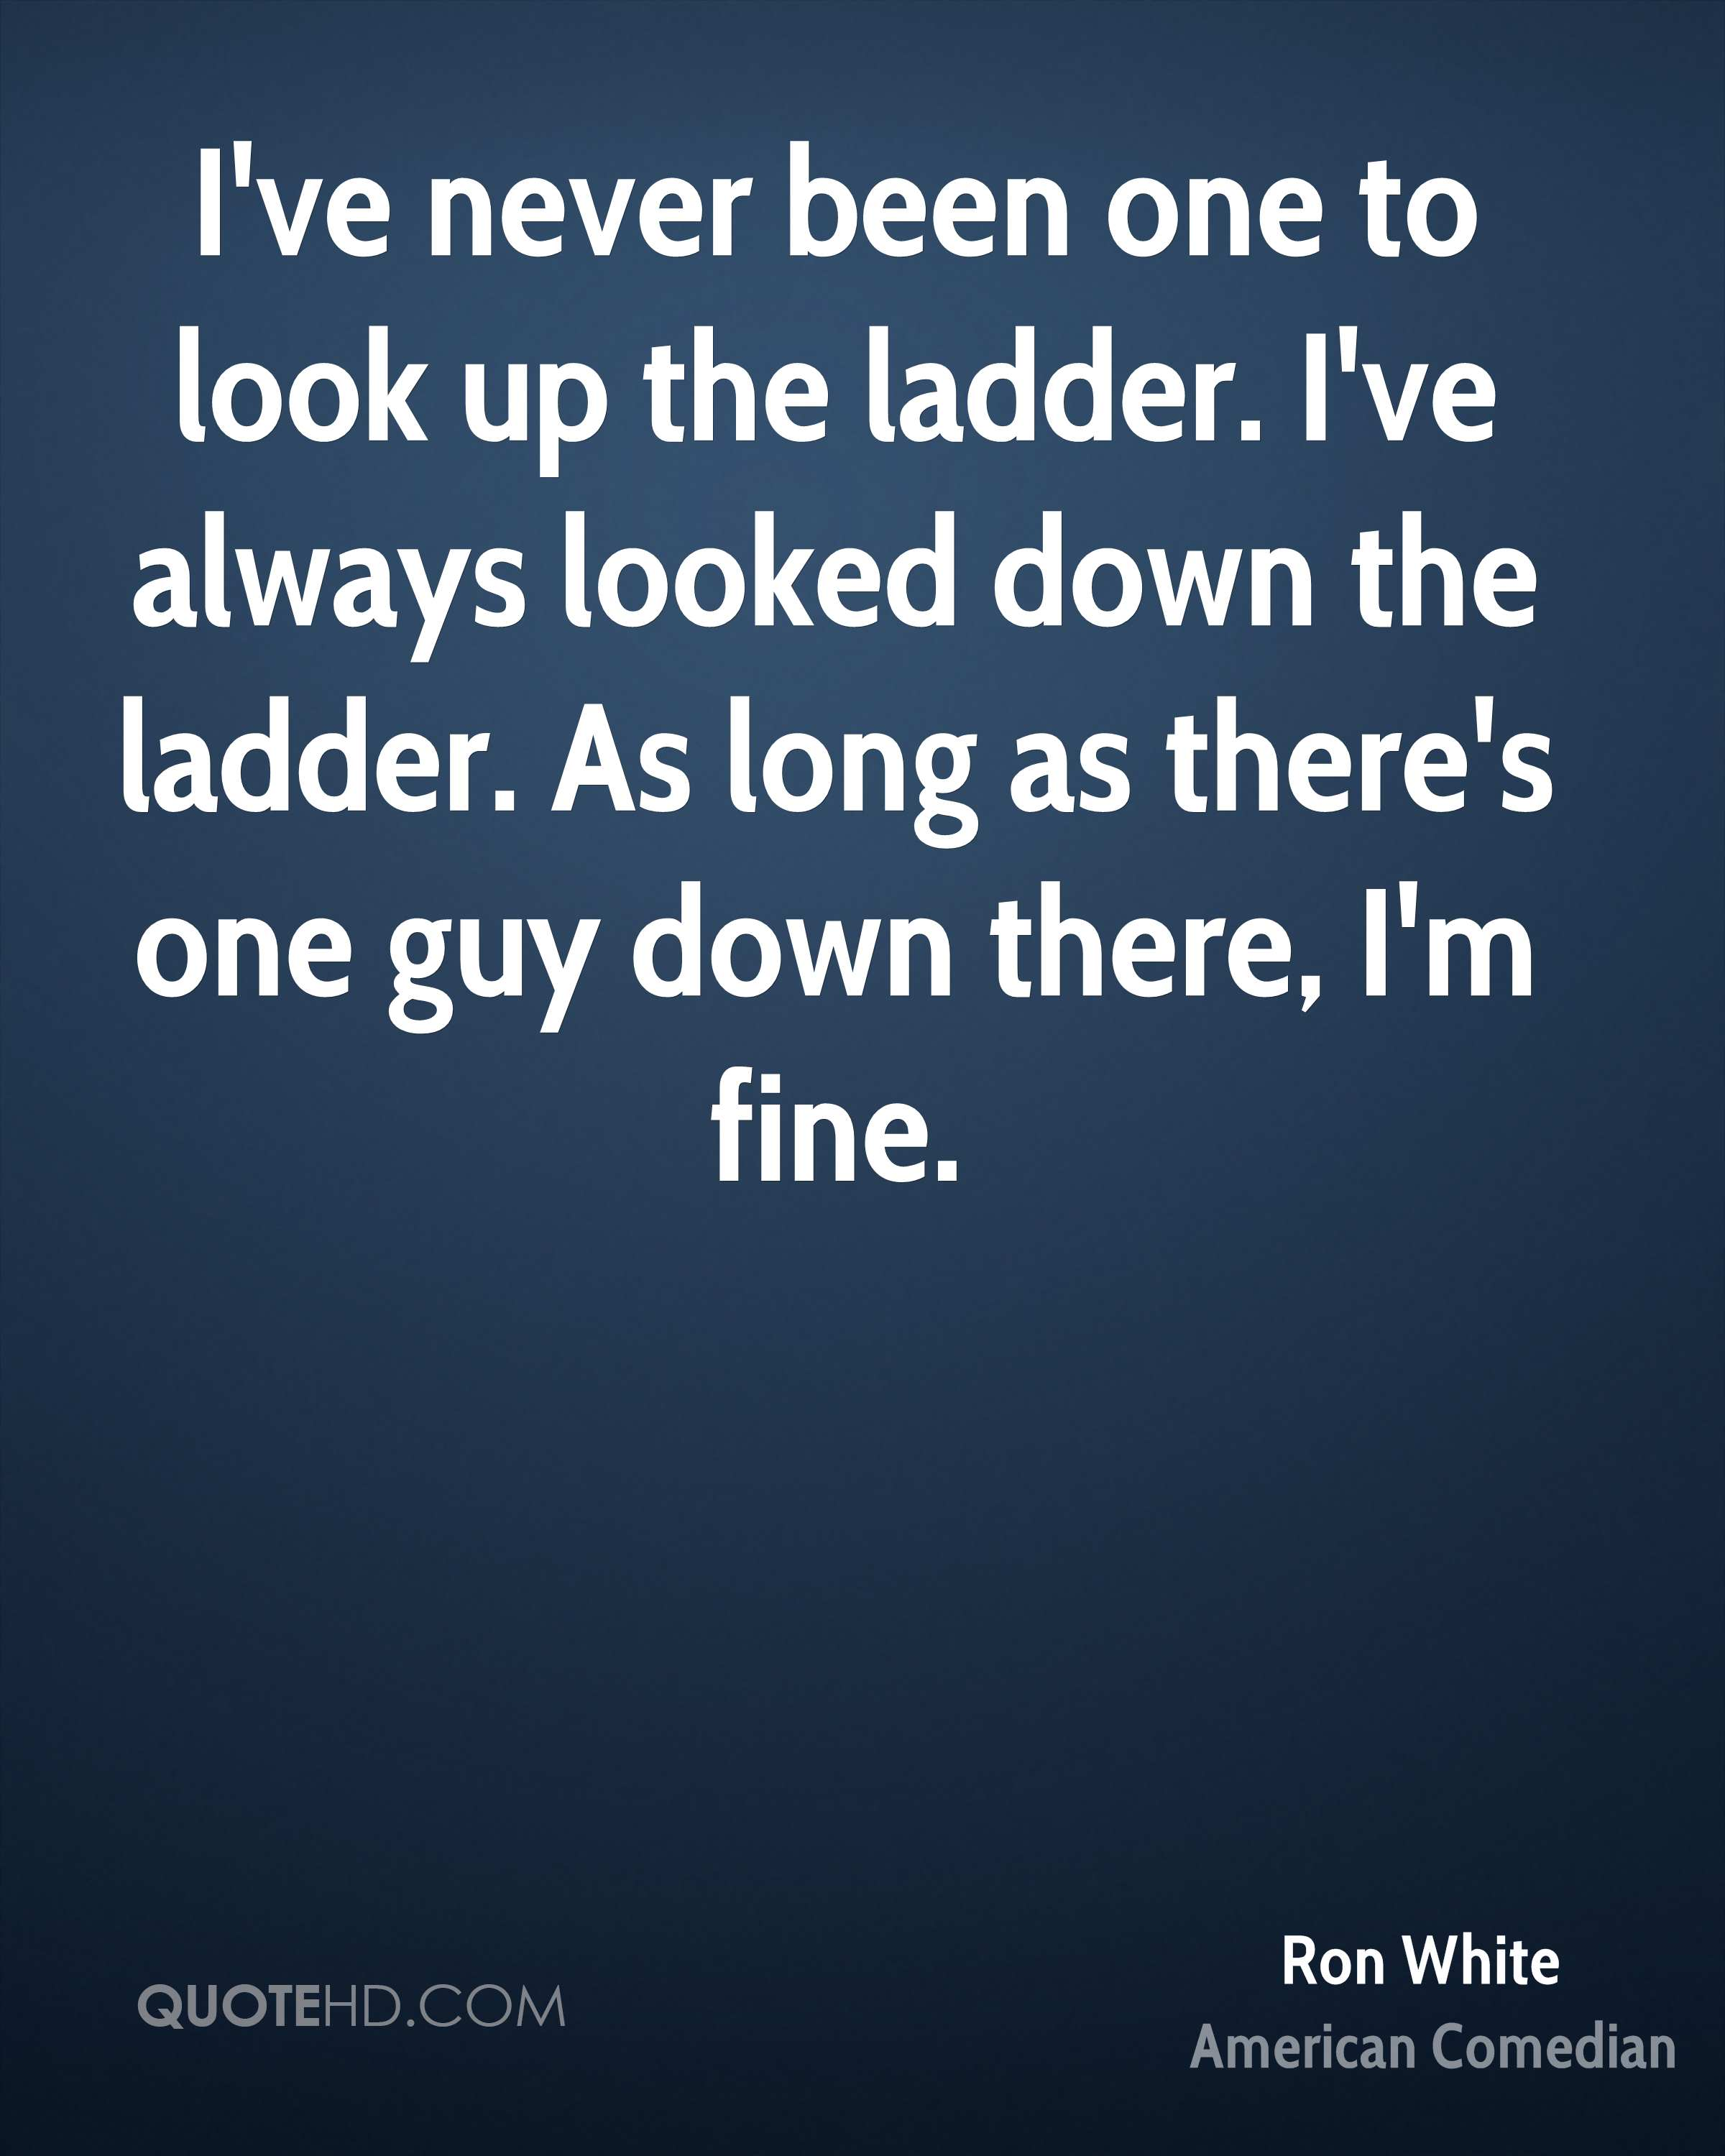 I've never been one to look up the ladder. I've always looked down the ladder. As long as there's one guy down there, I'm fine.